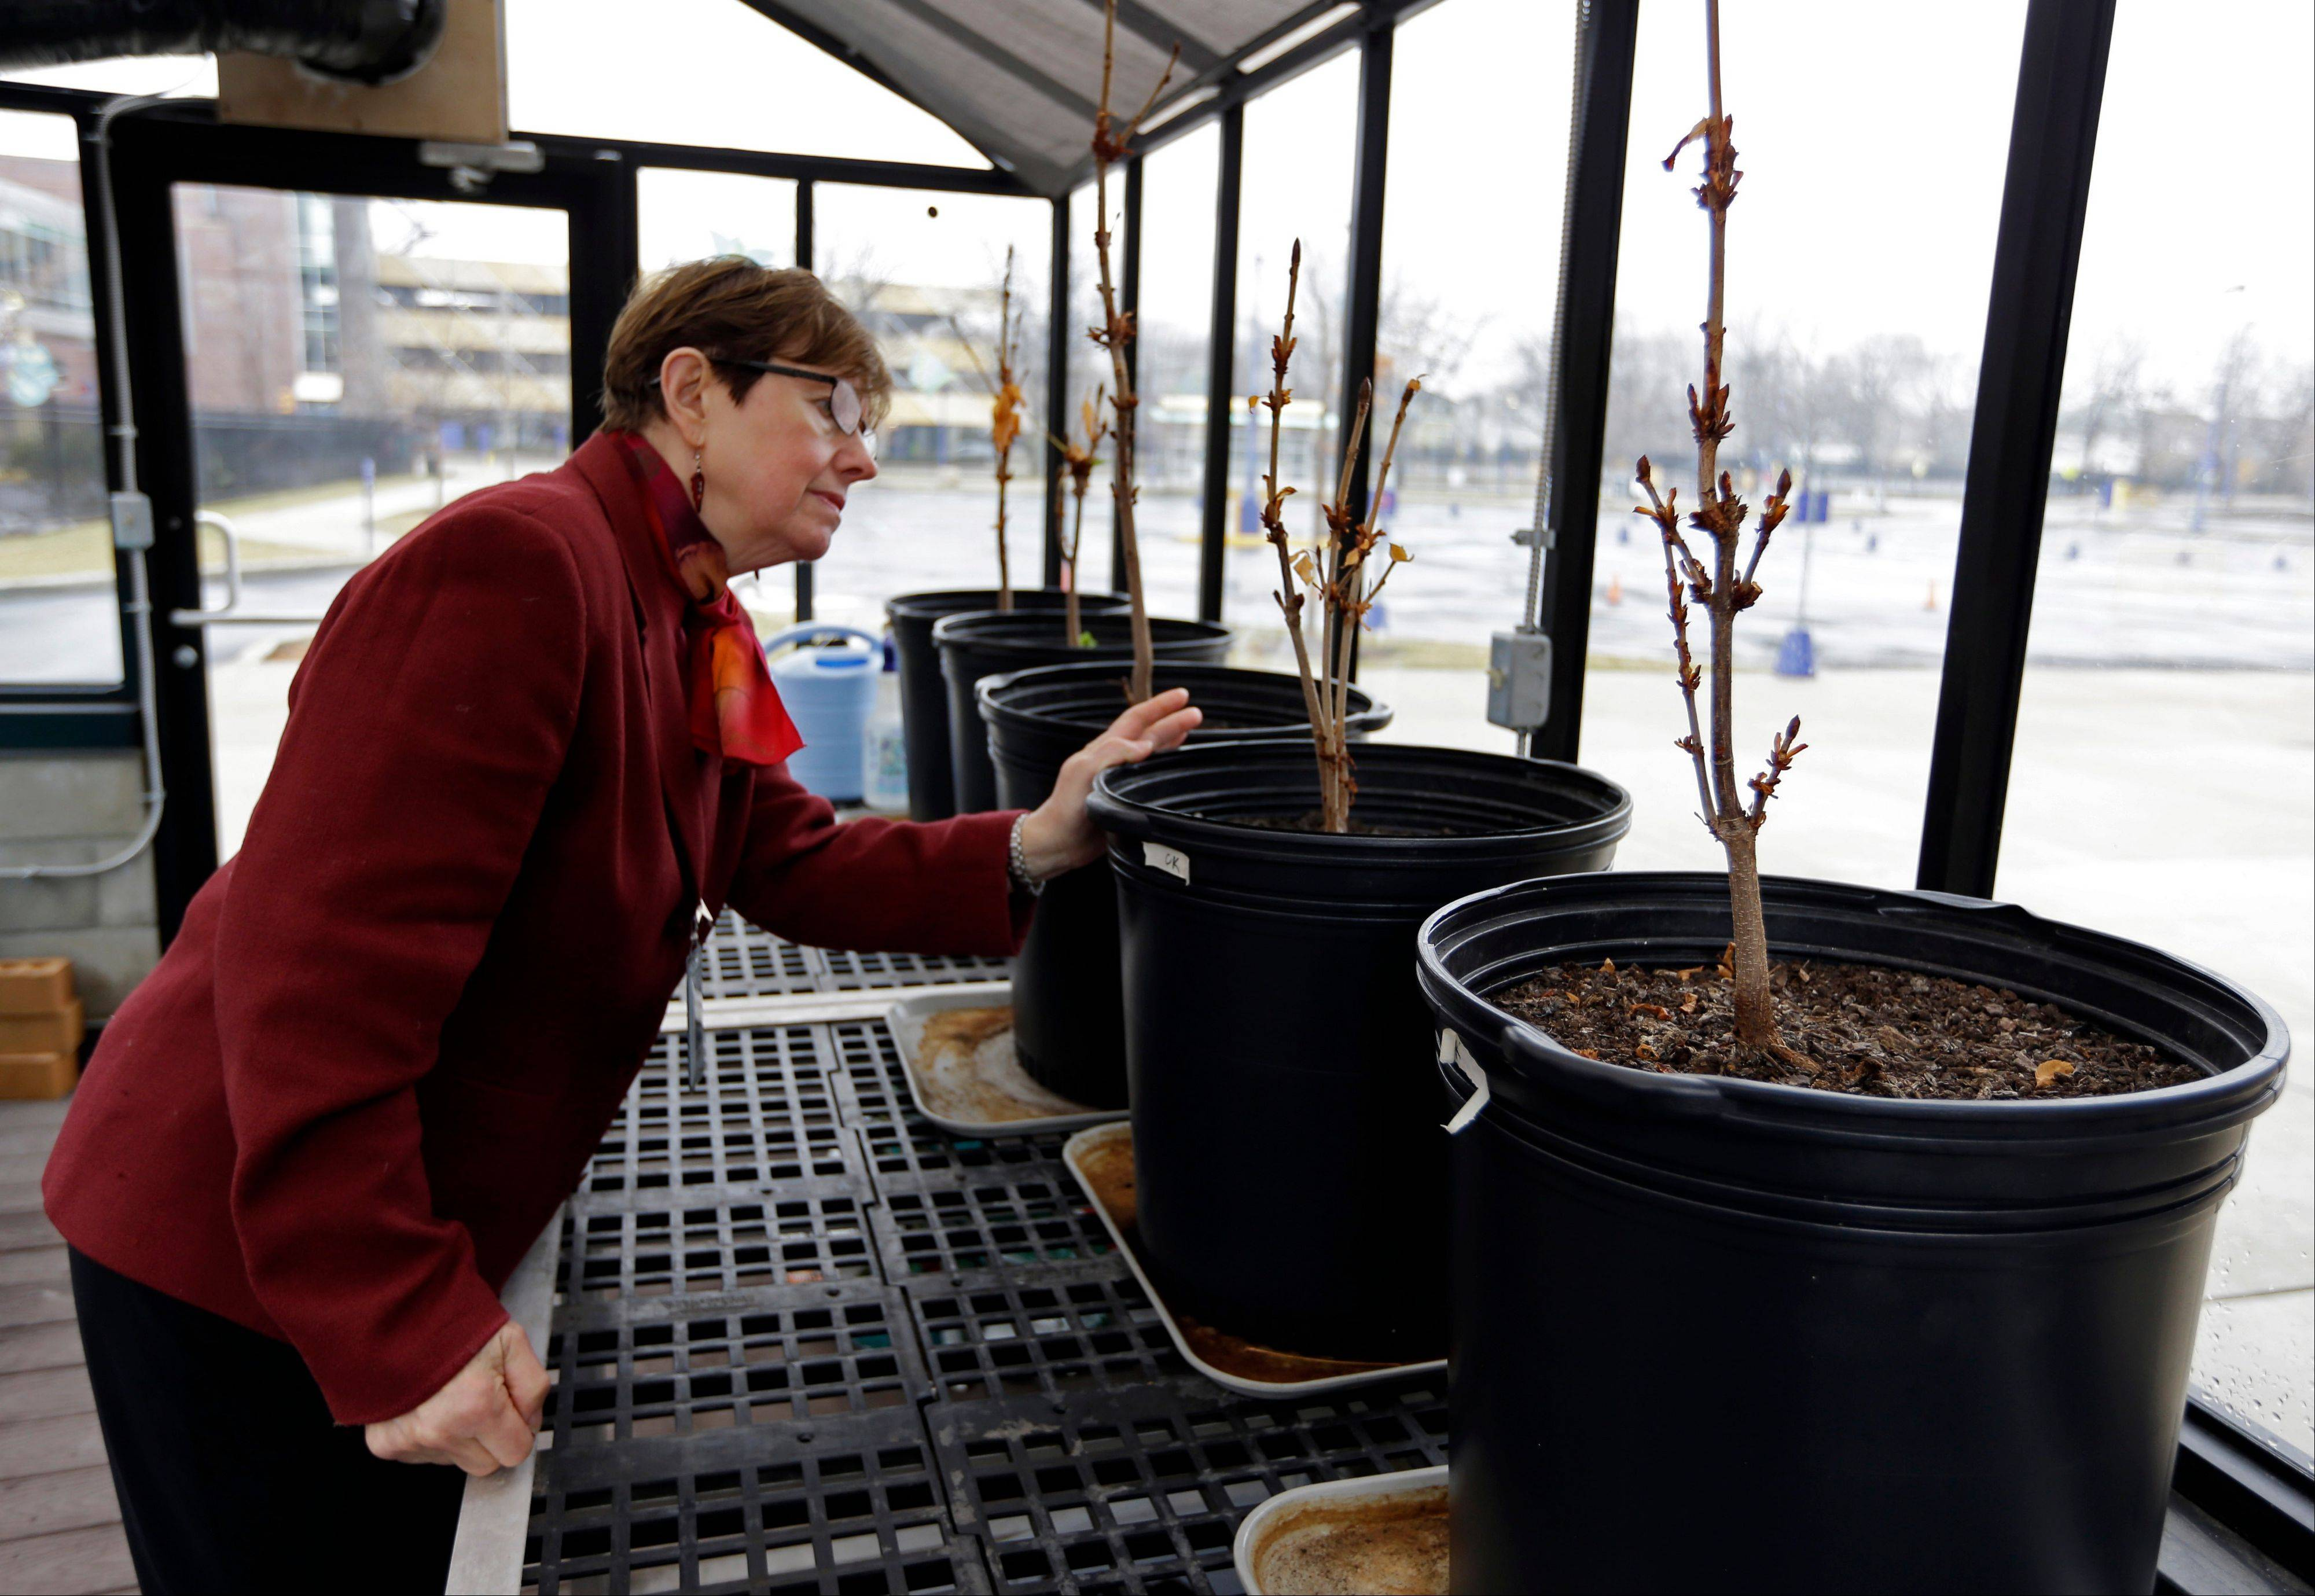 Mary Fortney, learning resource development manager at the Indianapolis Children's Museum, looks over chestnut saplings from the tree outside Anne Frank's hiding spot in Amsterdam being cared for in the museum's greenhouse in Indianapolis. Eleven saplings grown from seeds taken from the massive chestnut tree that stood outside the home in which Frank and her family hid are being distributed to museums, schools, parks and Holocaust remembrance centers through a project led by The Anne Frank Center USA.